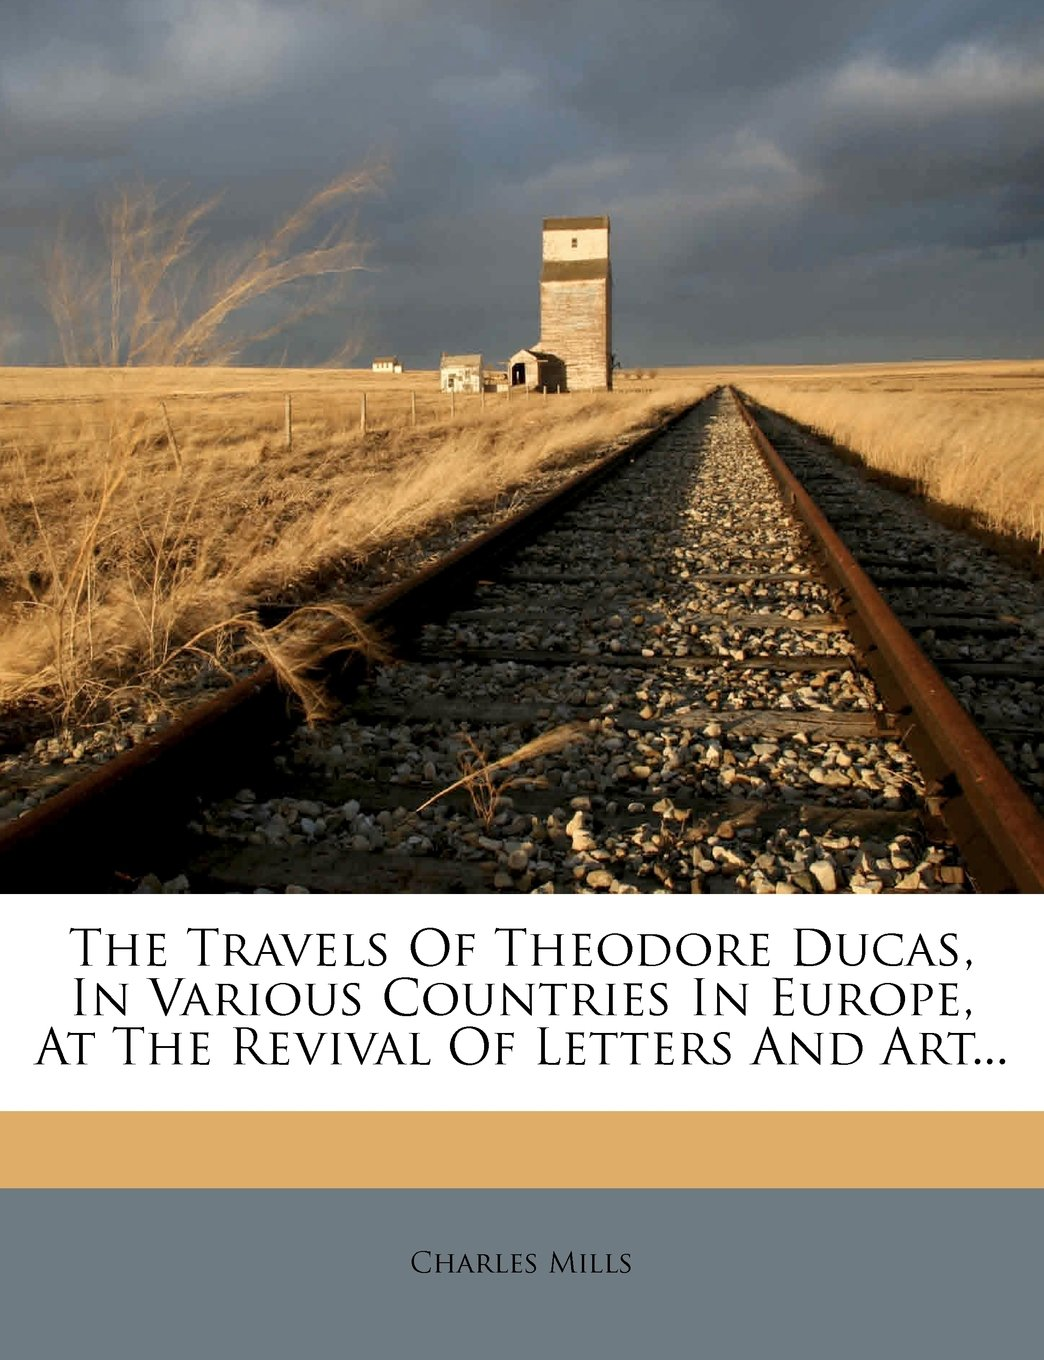 Read Online The Travels Of Theodore Ducas, In Various Countries In Europe, At The Revival Of Letters And Art... pdf epub